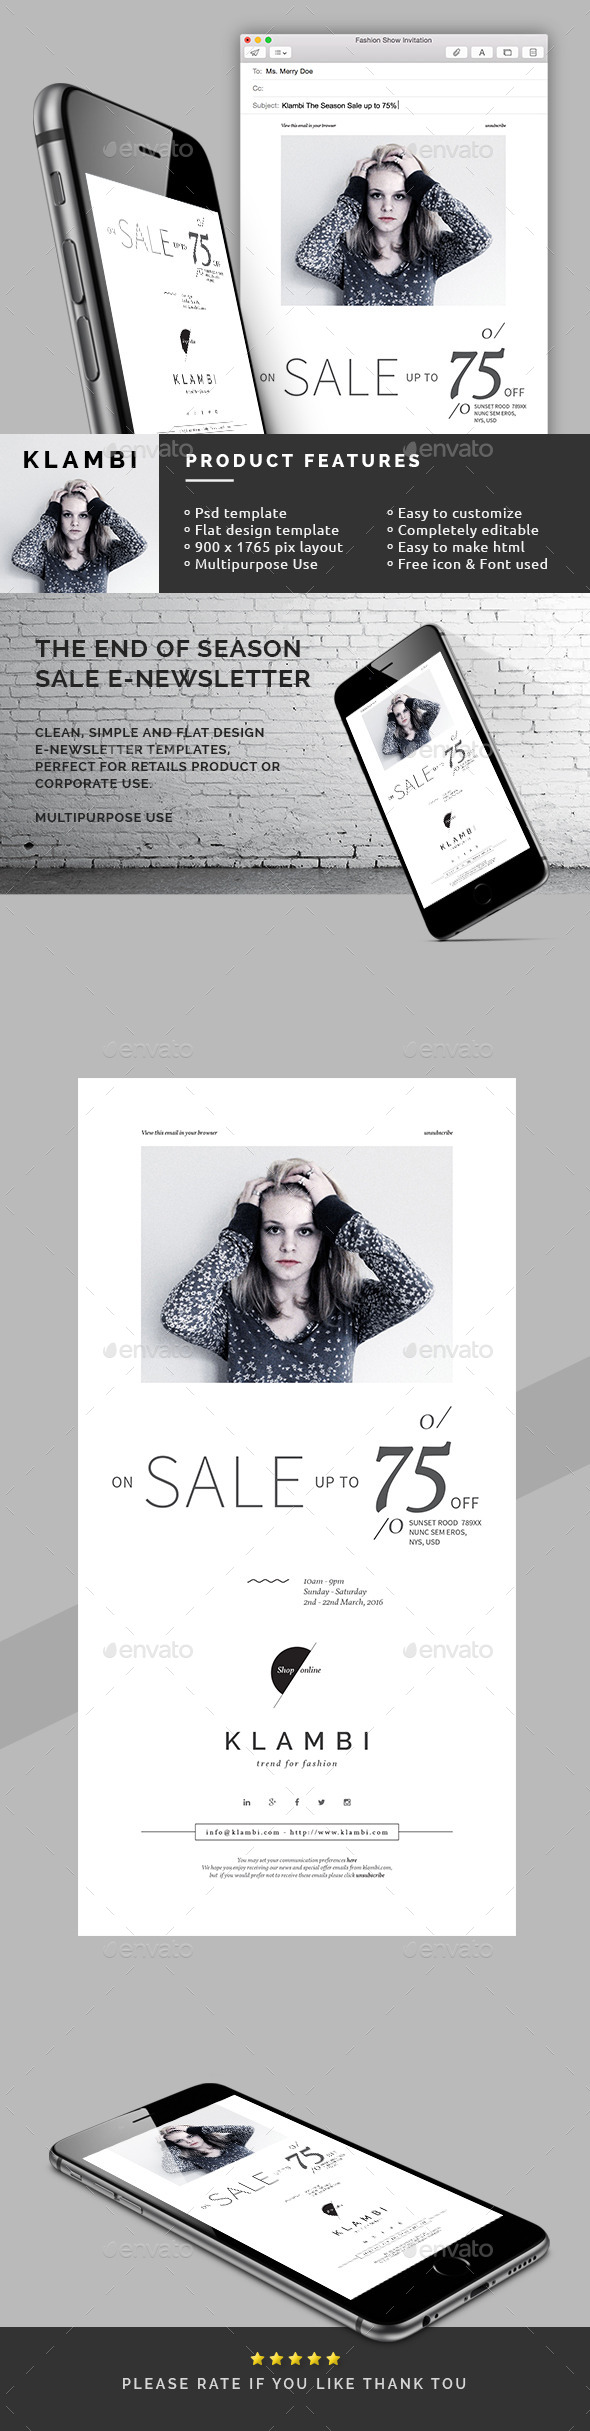 The End of Season Sale E-Newsletter - E-newsletters Web Elements